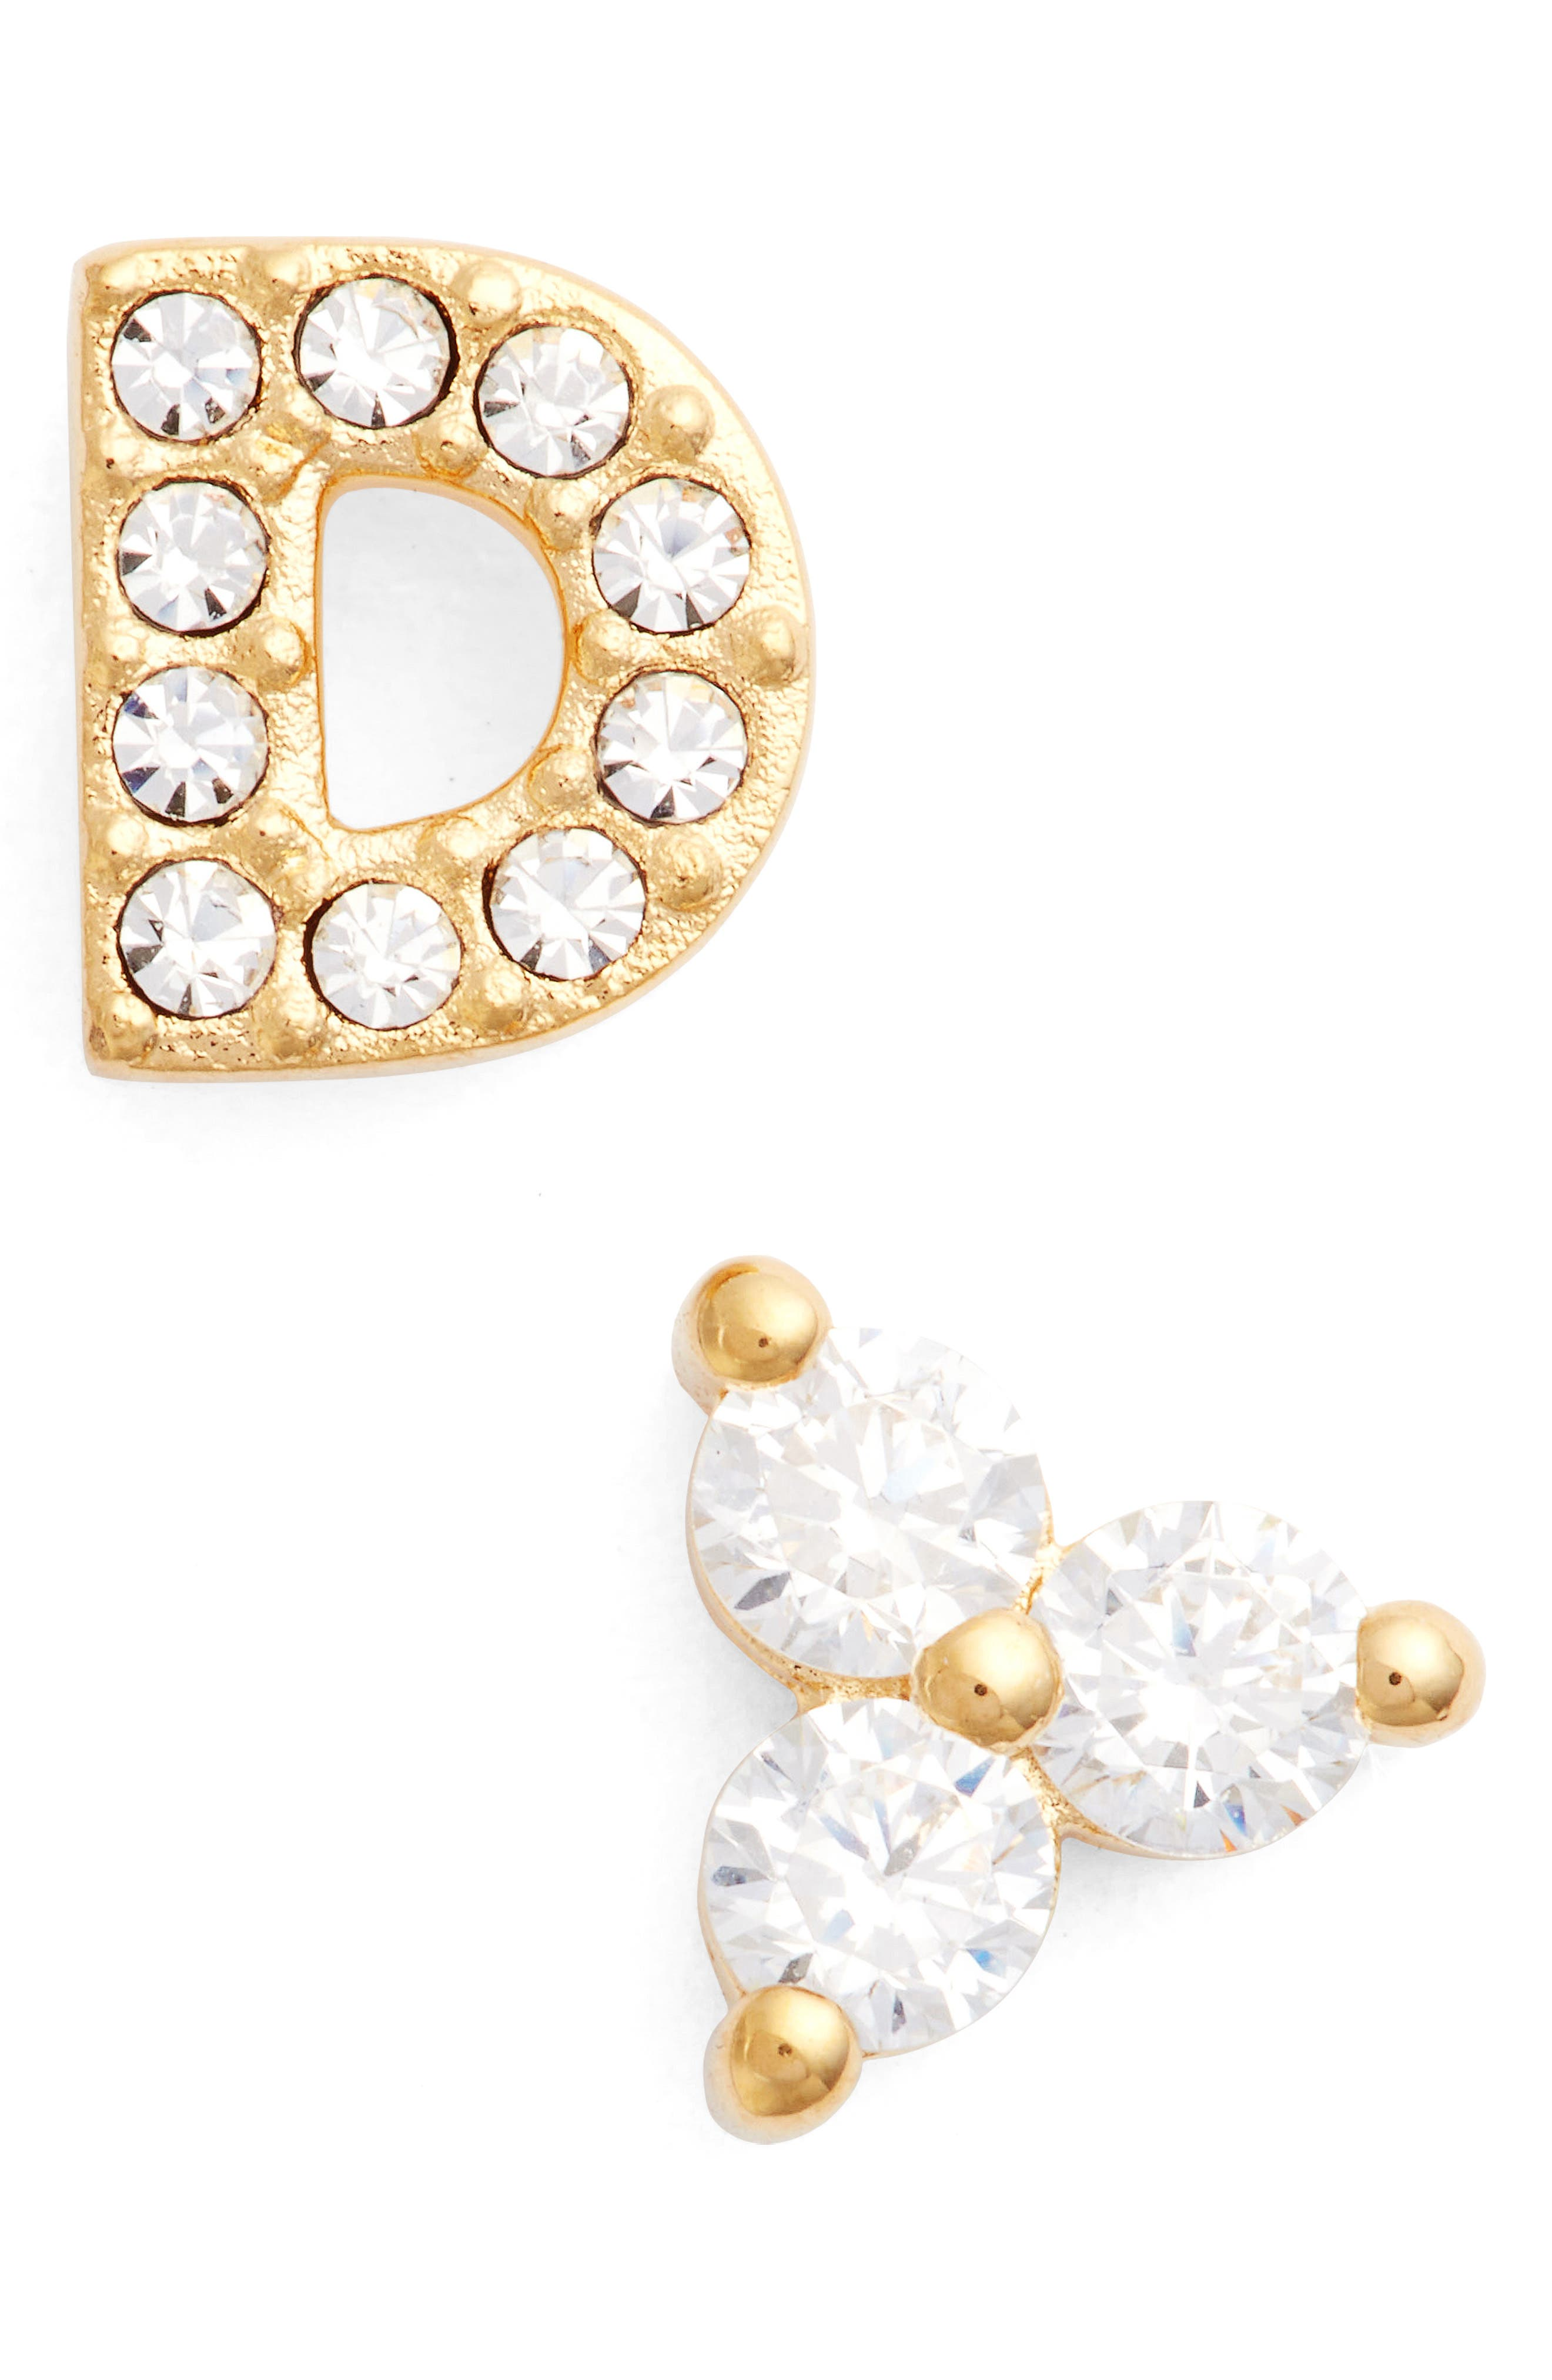 Initial Mismatched Stud Earrings,                         Main,                         color, Gold - D